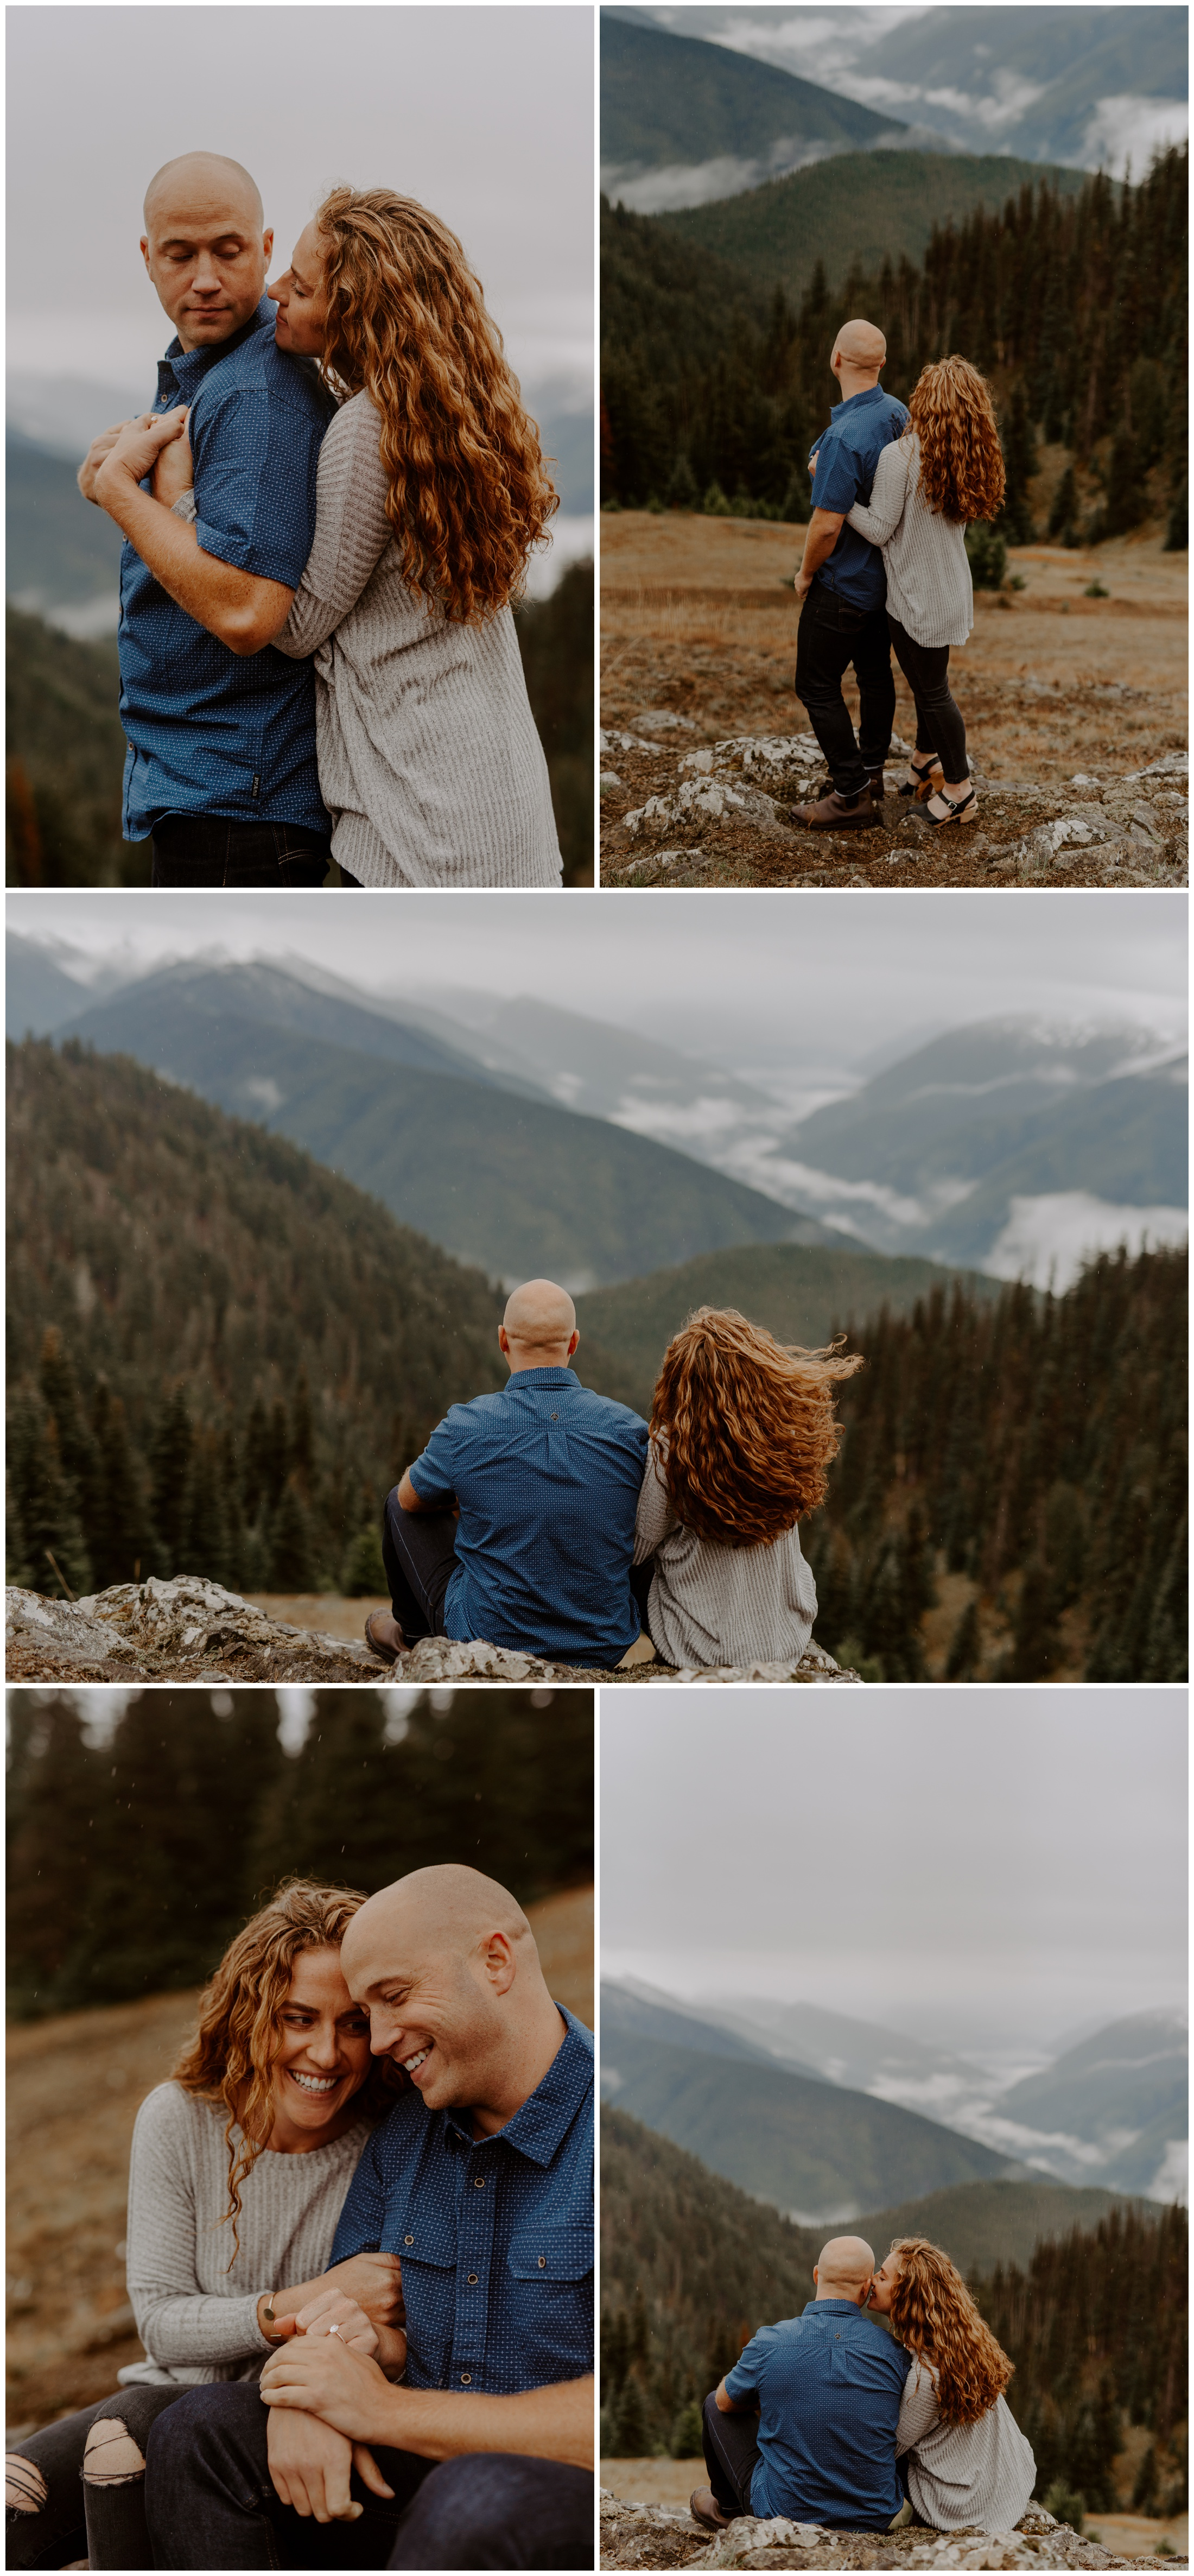 Olympic National Park Engagements | Jessica Heron Images 019.JPG